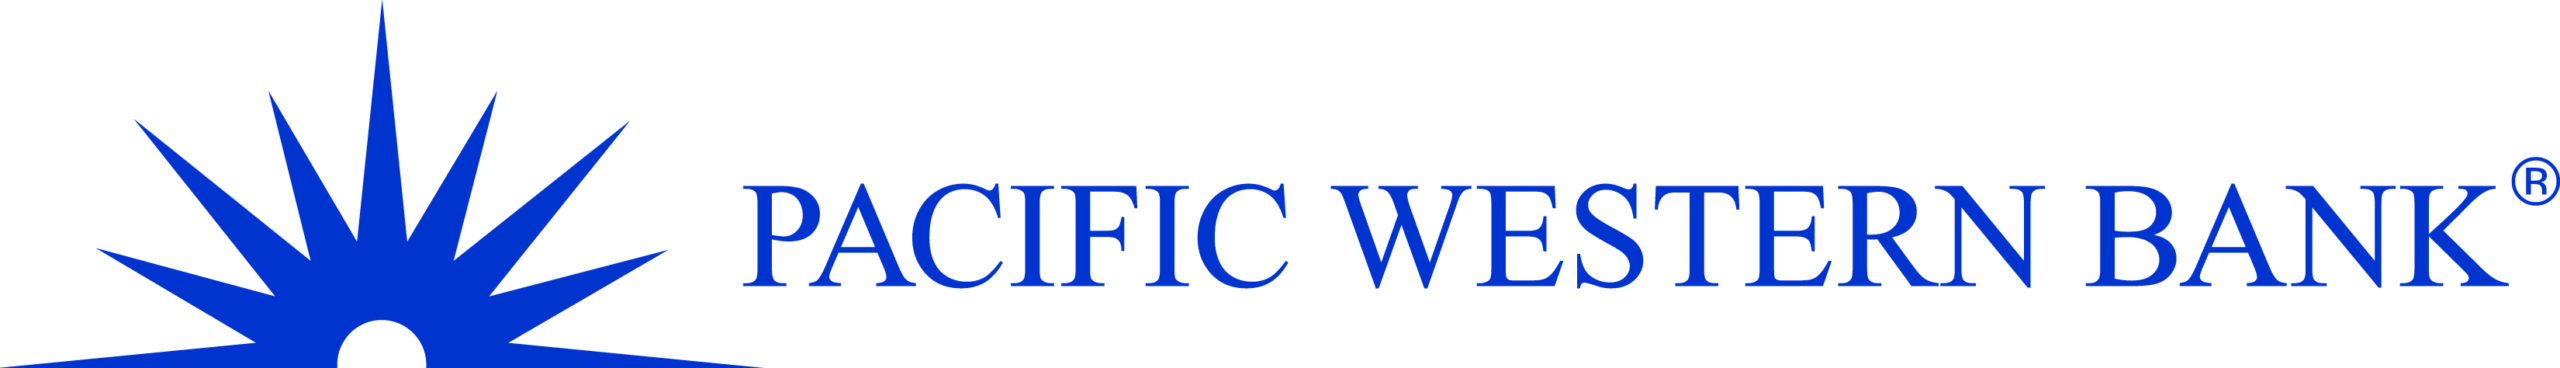 PacificWesternBank_horizontal_PMS288_Large